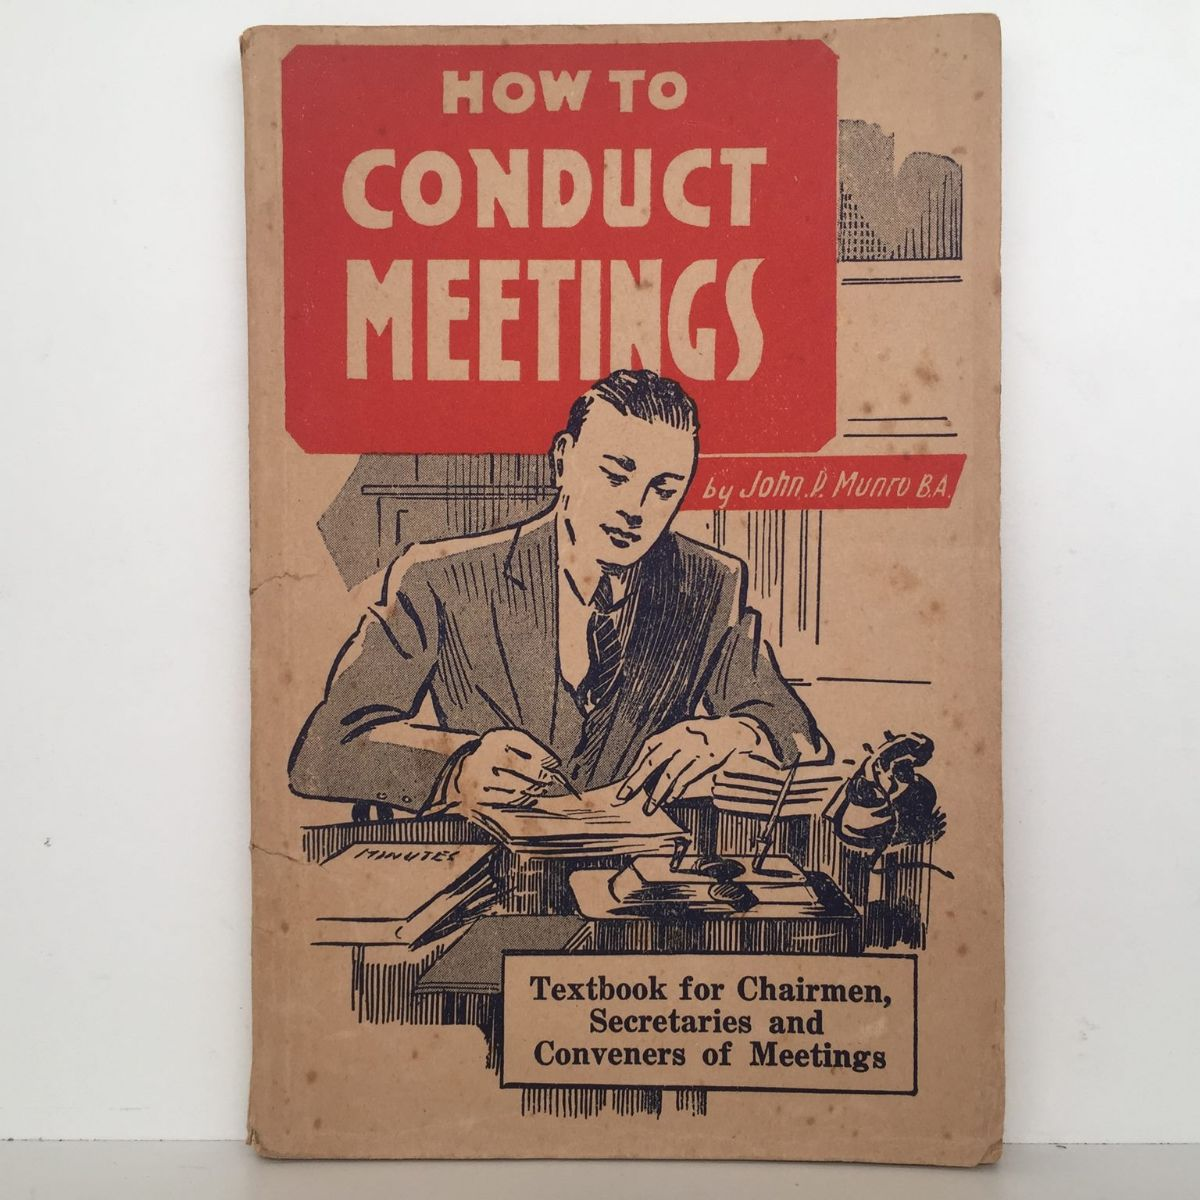 Vintage Handbook: HOW TO CONDUCT MEETINGS